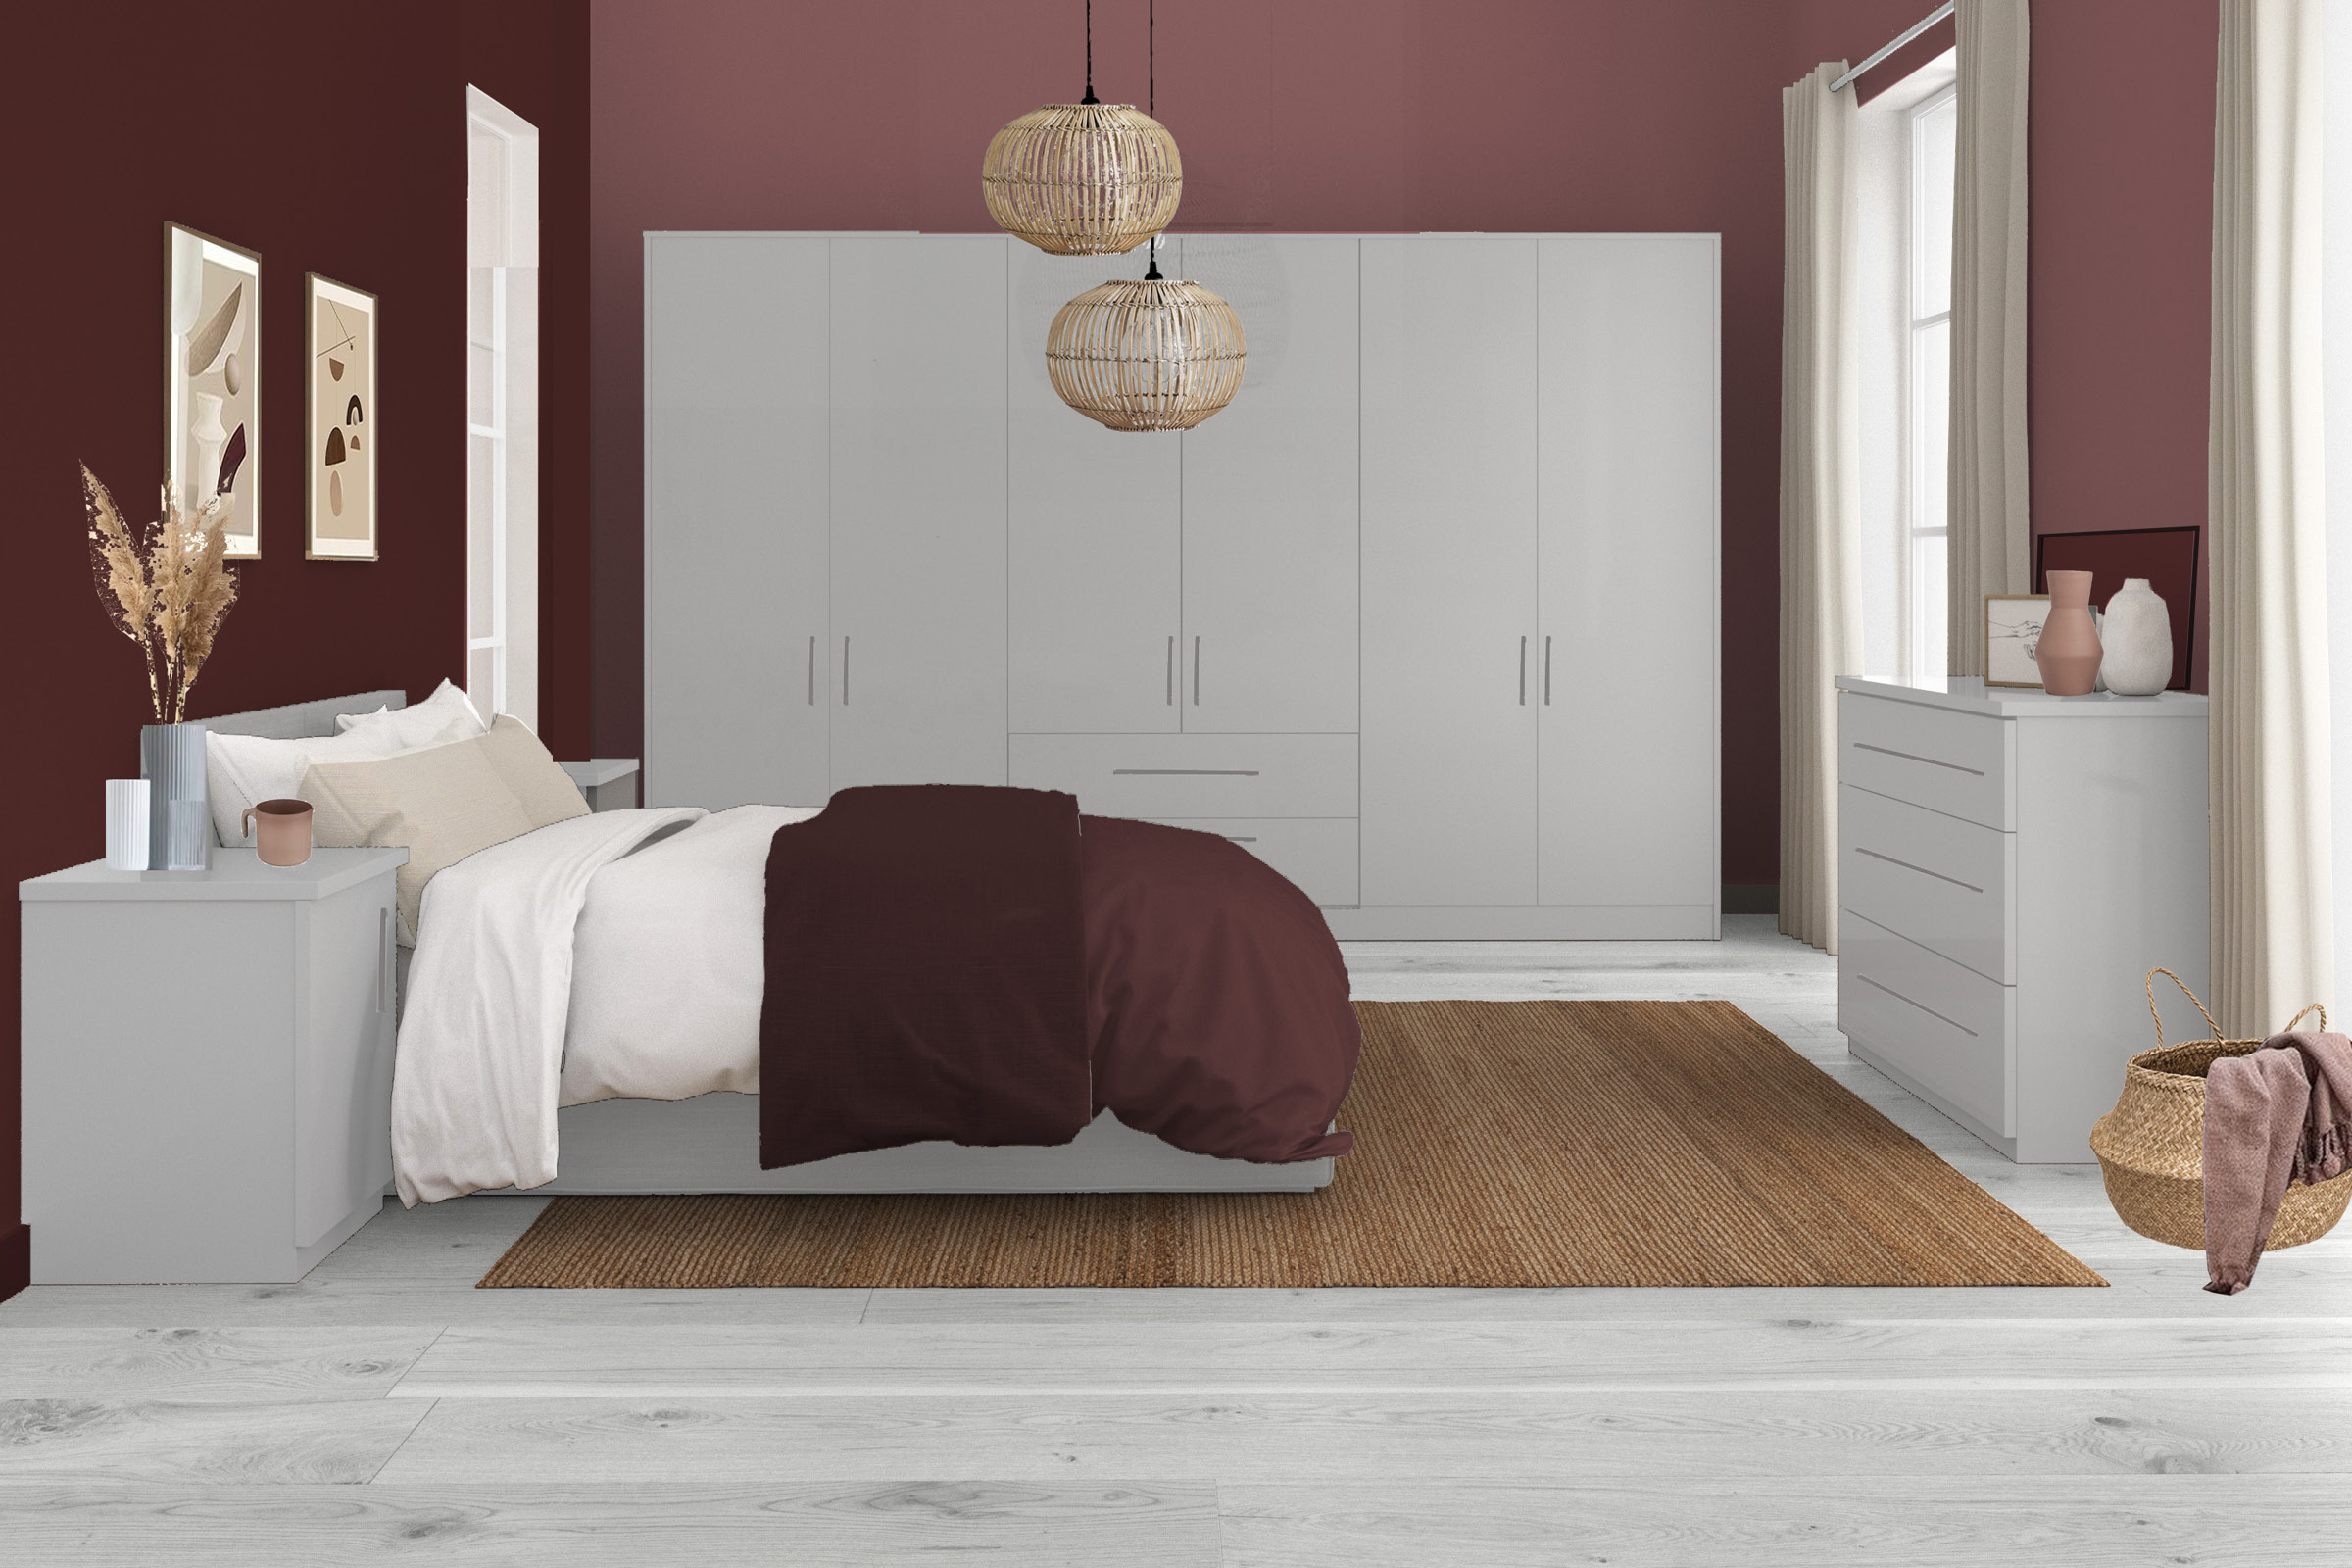 Bella High Gloss Light Grey / Bella High Gloss Dust Grey / Style: Pisa